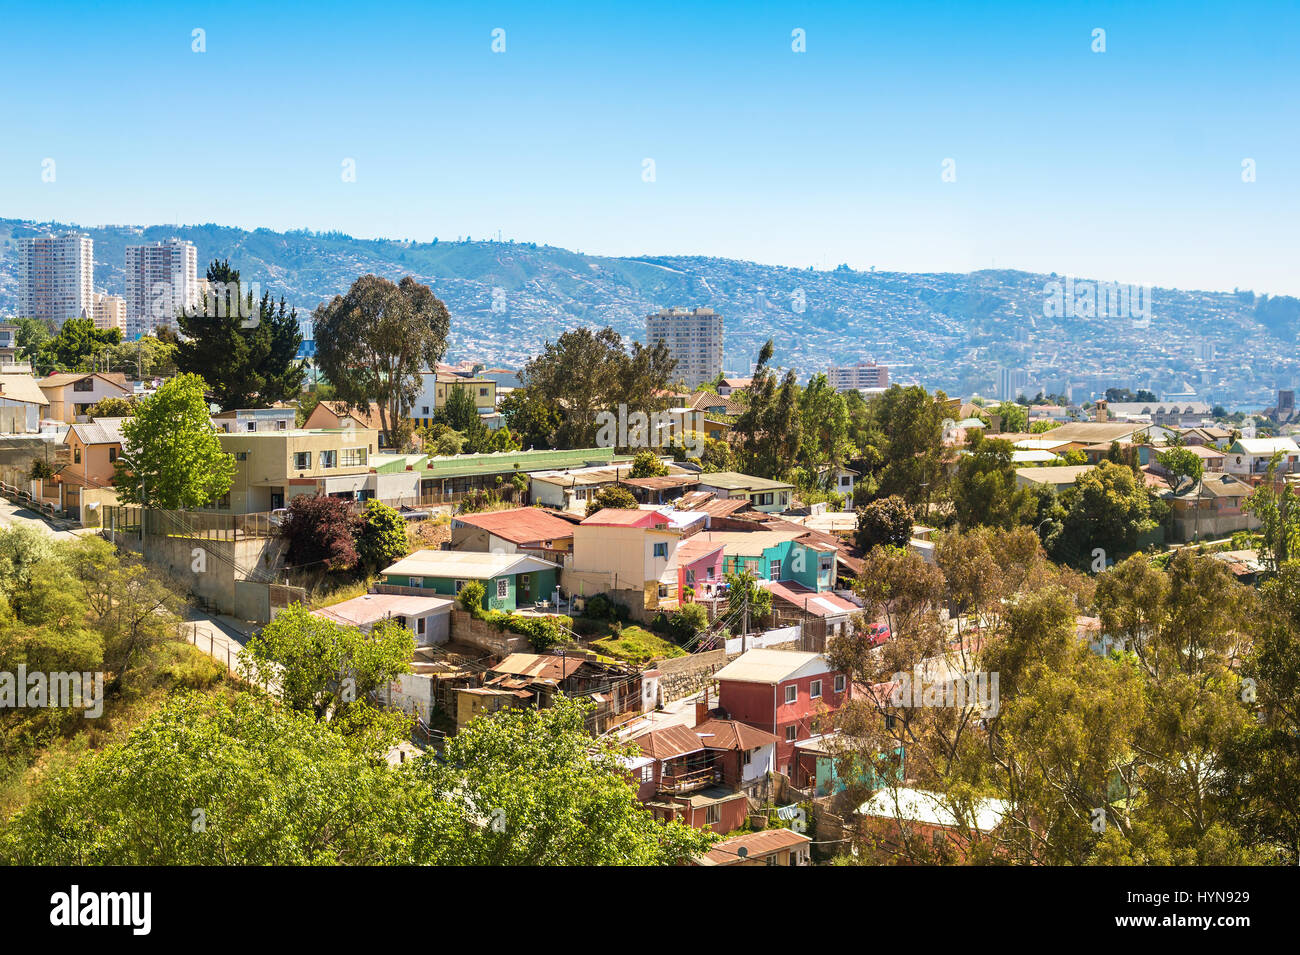 Small houses on the hill in Vina del Mar, Chile - Stock Image